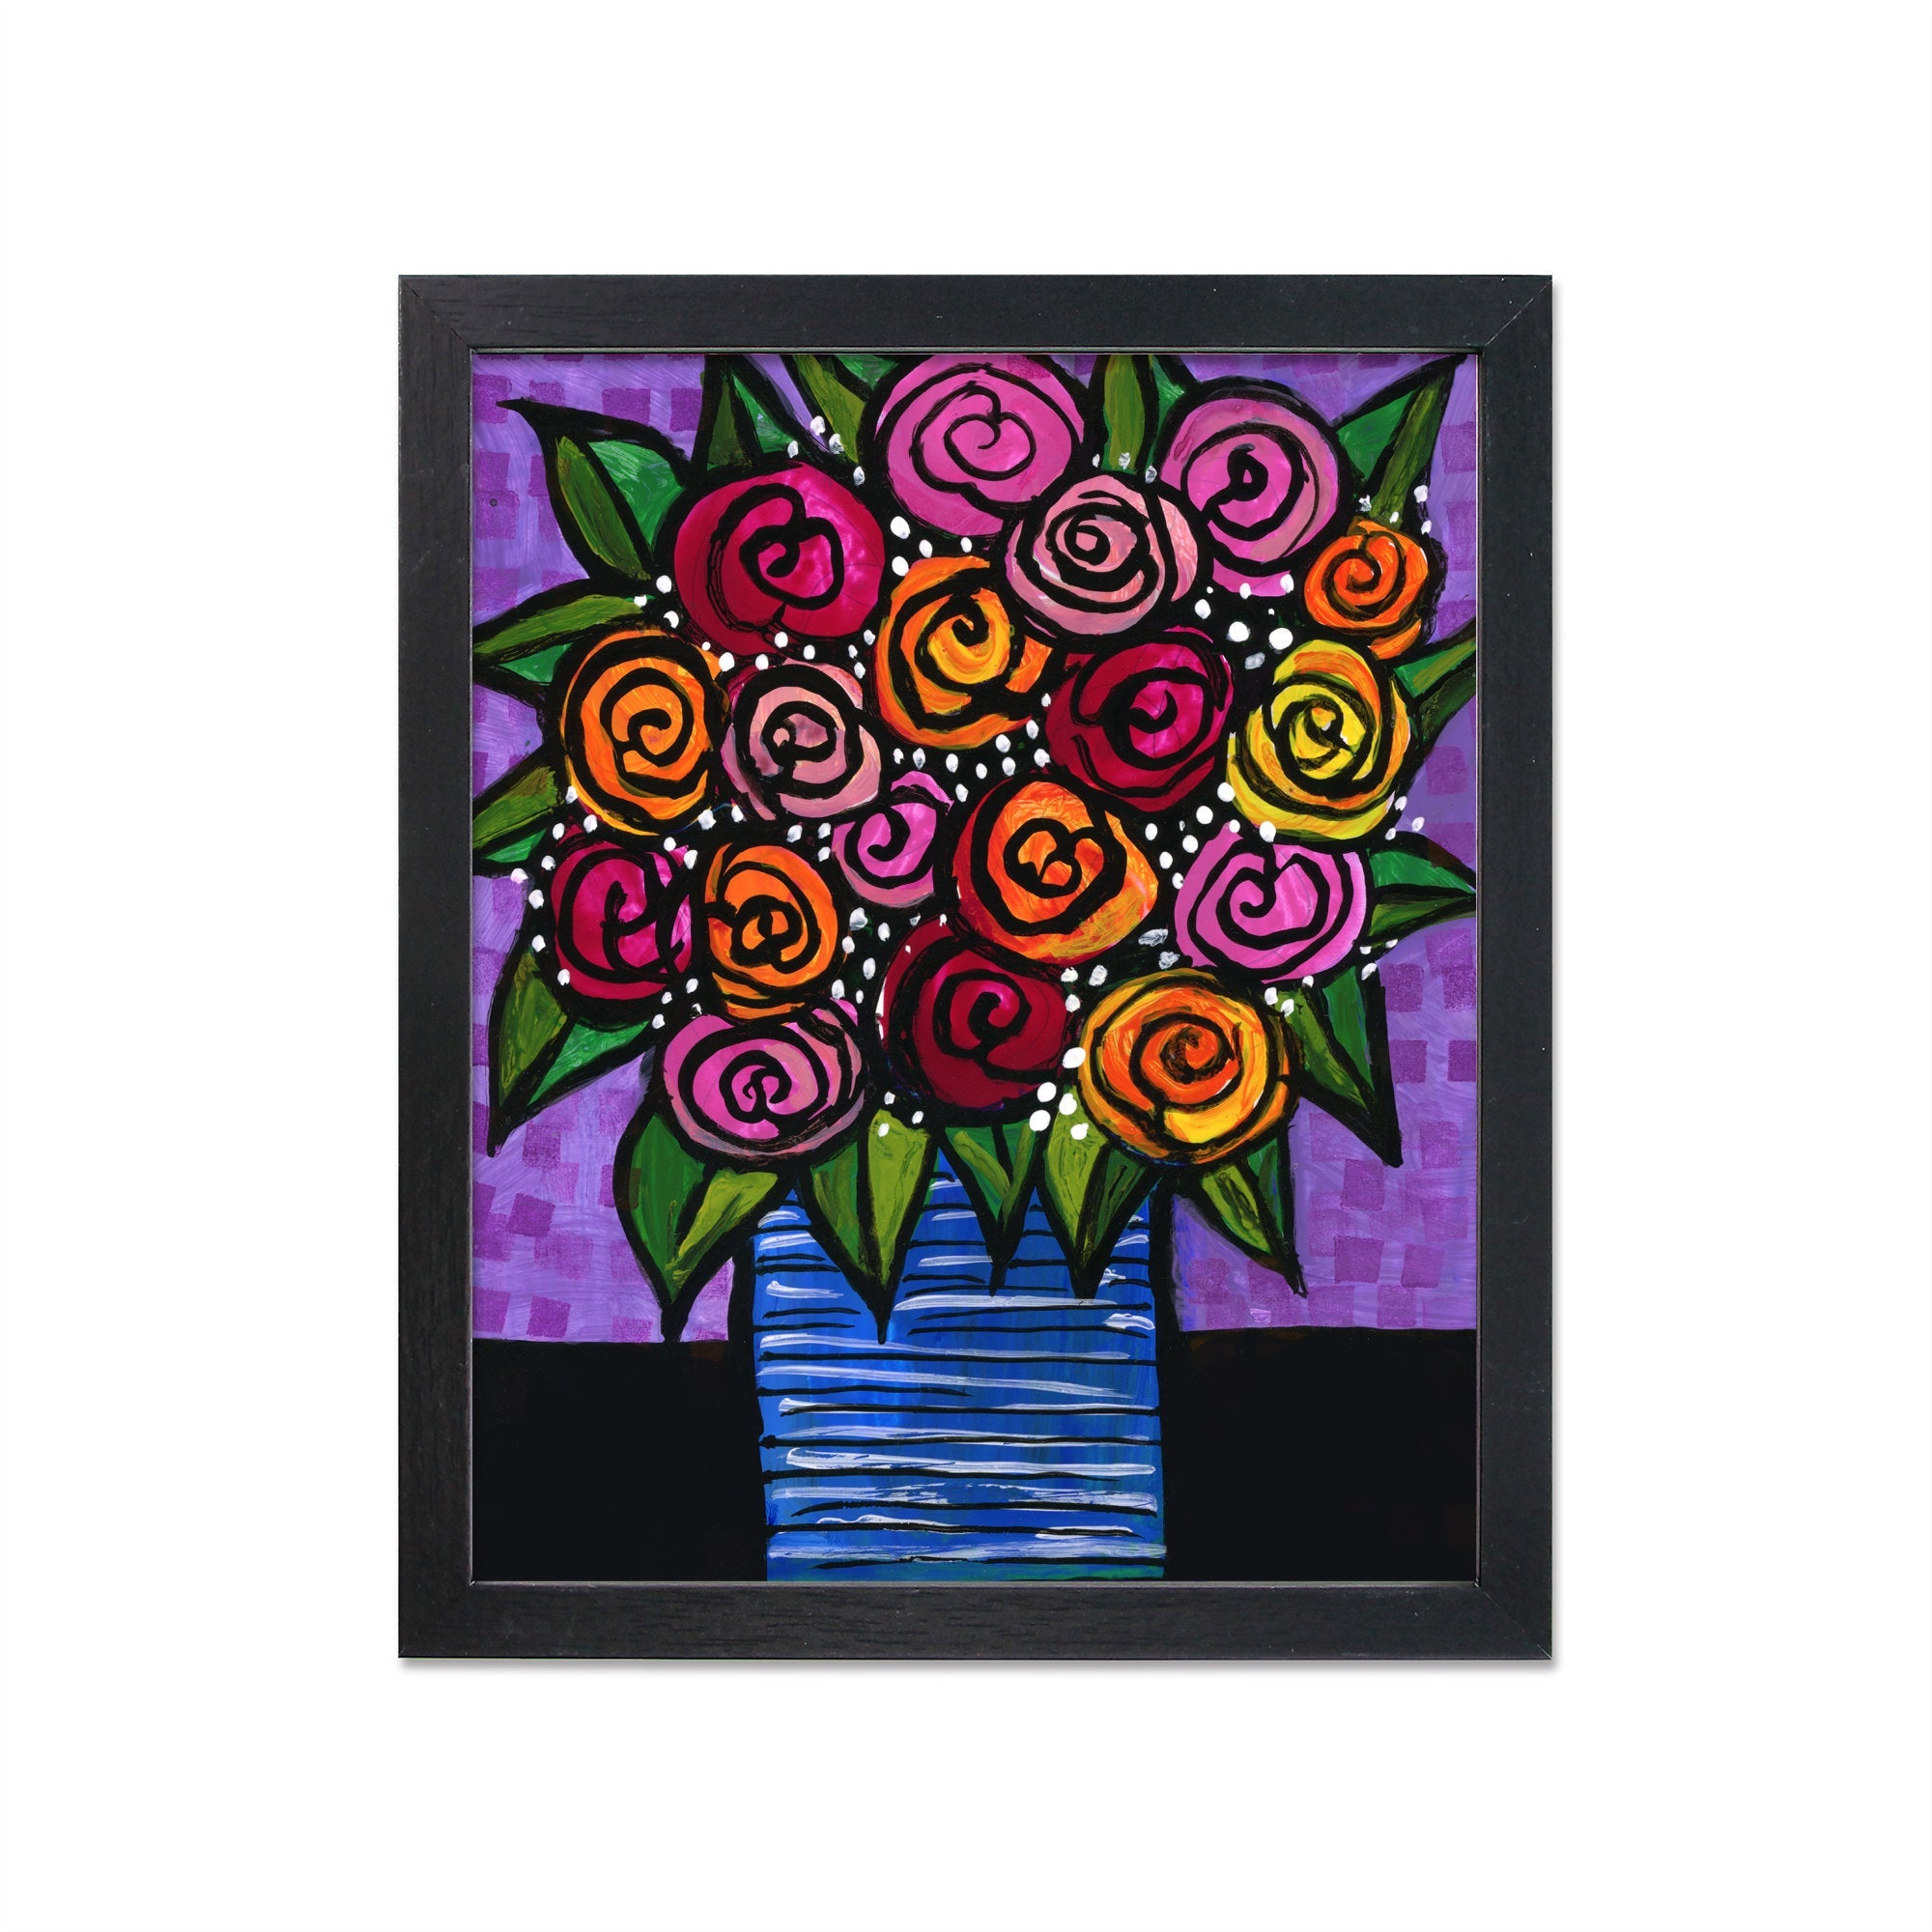 Vase of Roses Print - Whimsical Abstract Floral Art Giclee Print